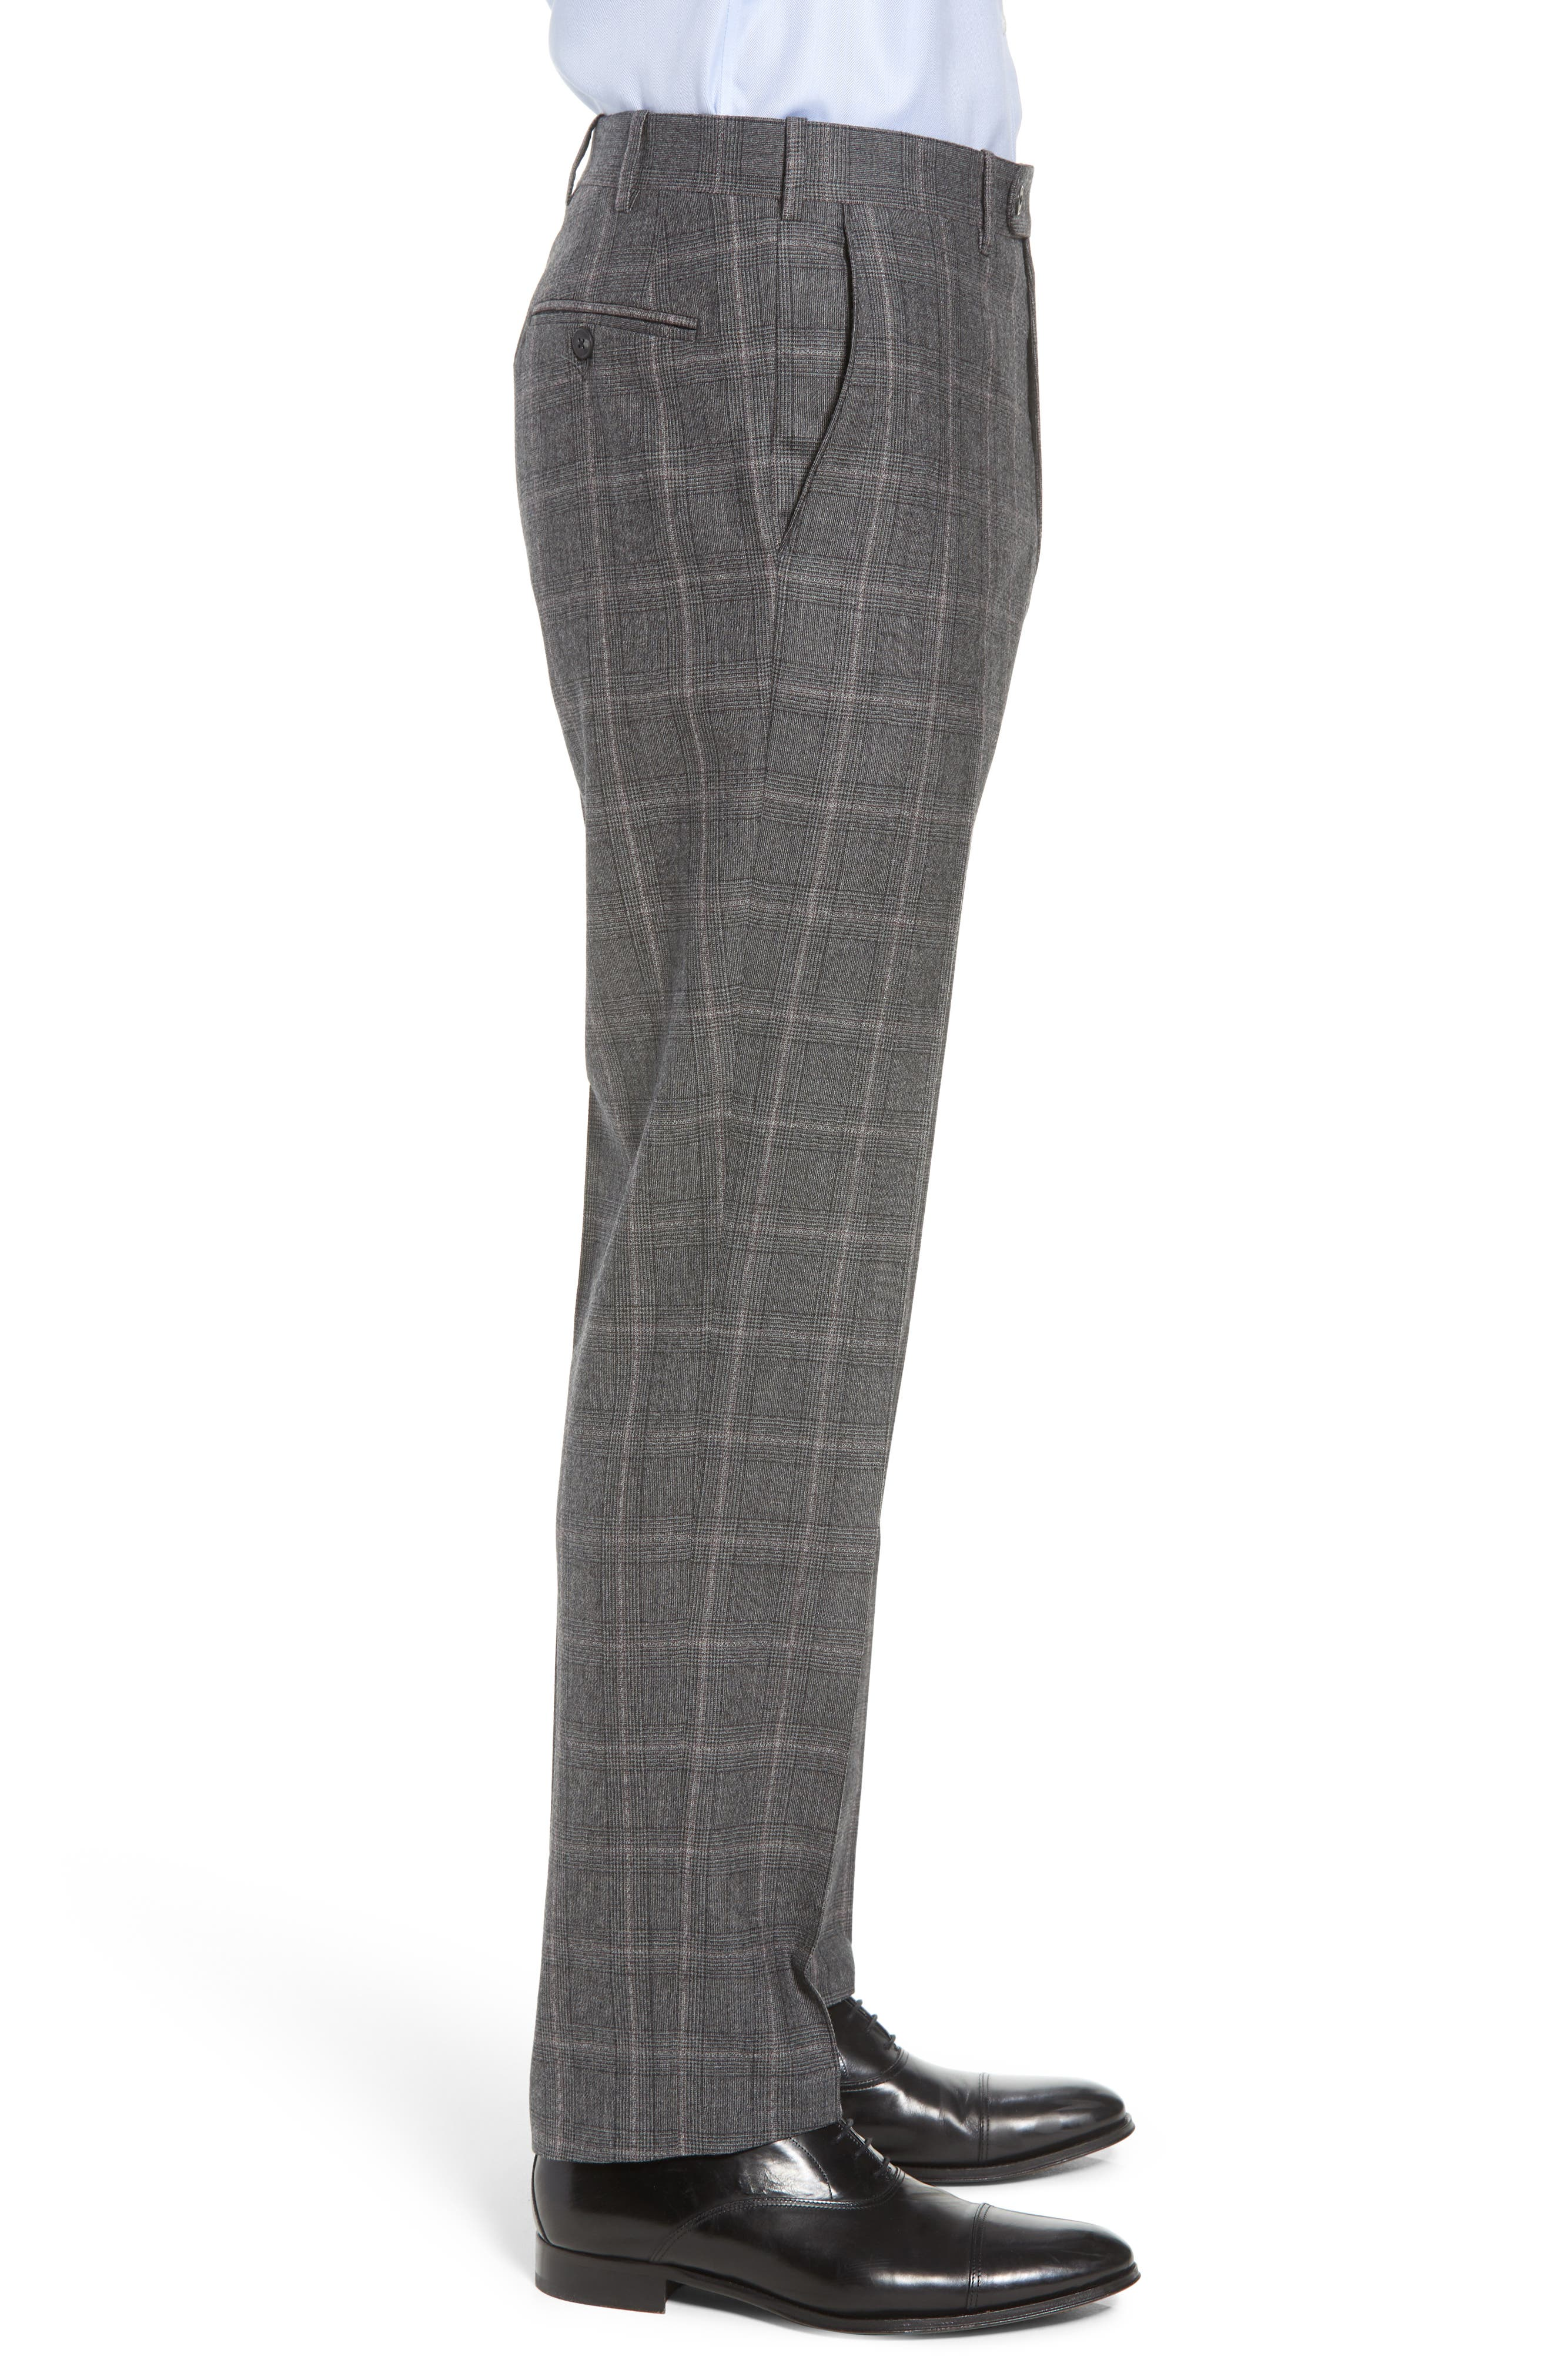 Torino Traditional Fit Flat Front Plaid Wool & Cashmere Trousers,                             Alternate thumbnail 3, color,                             GREY